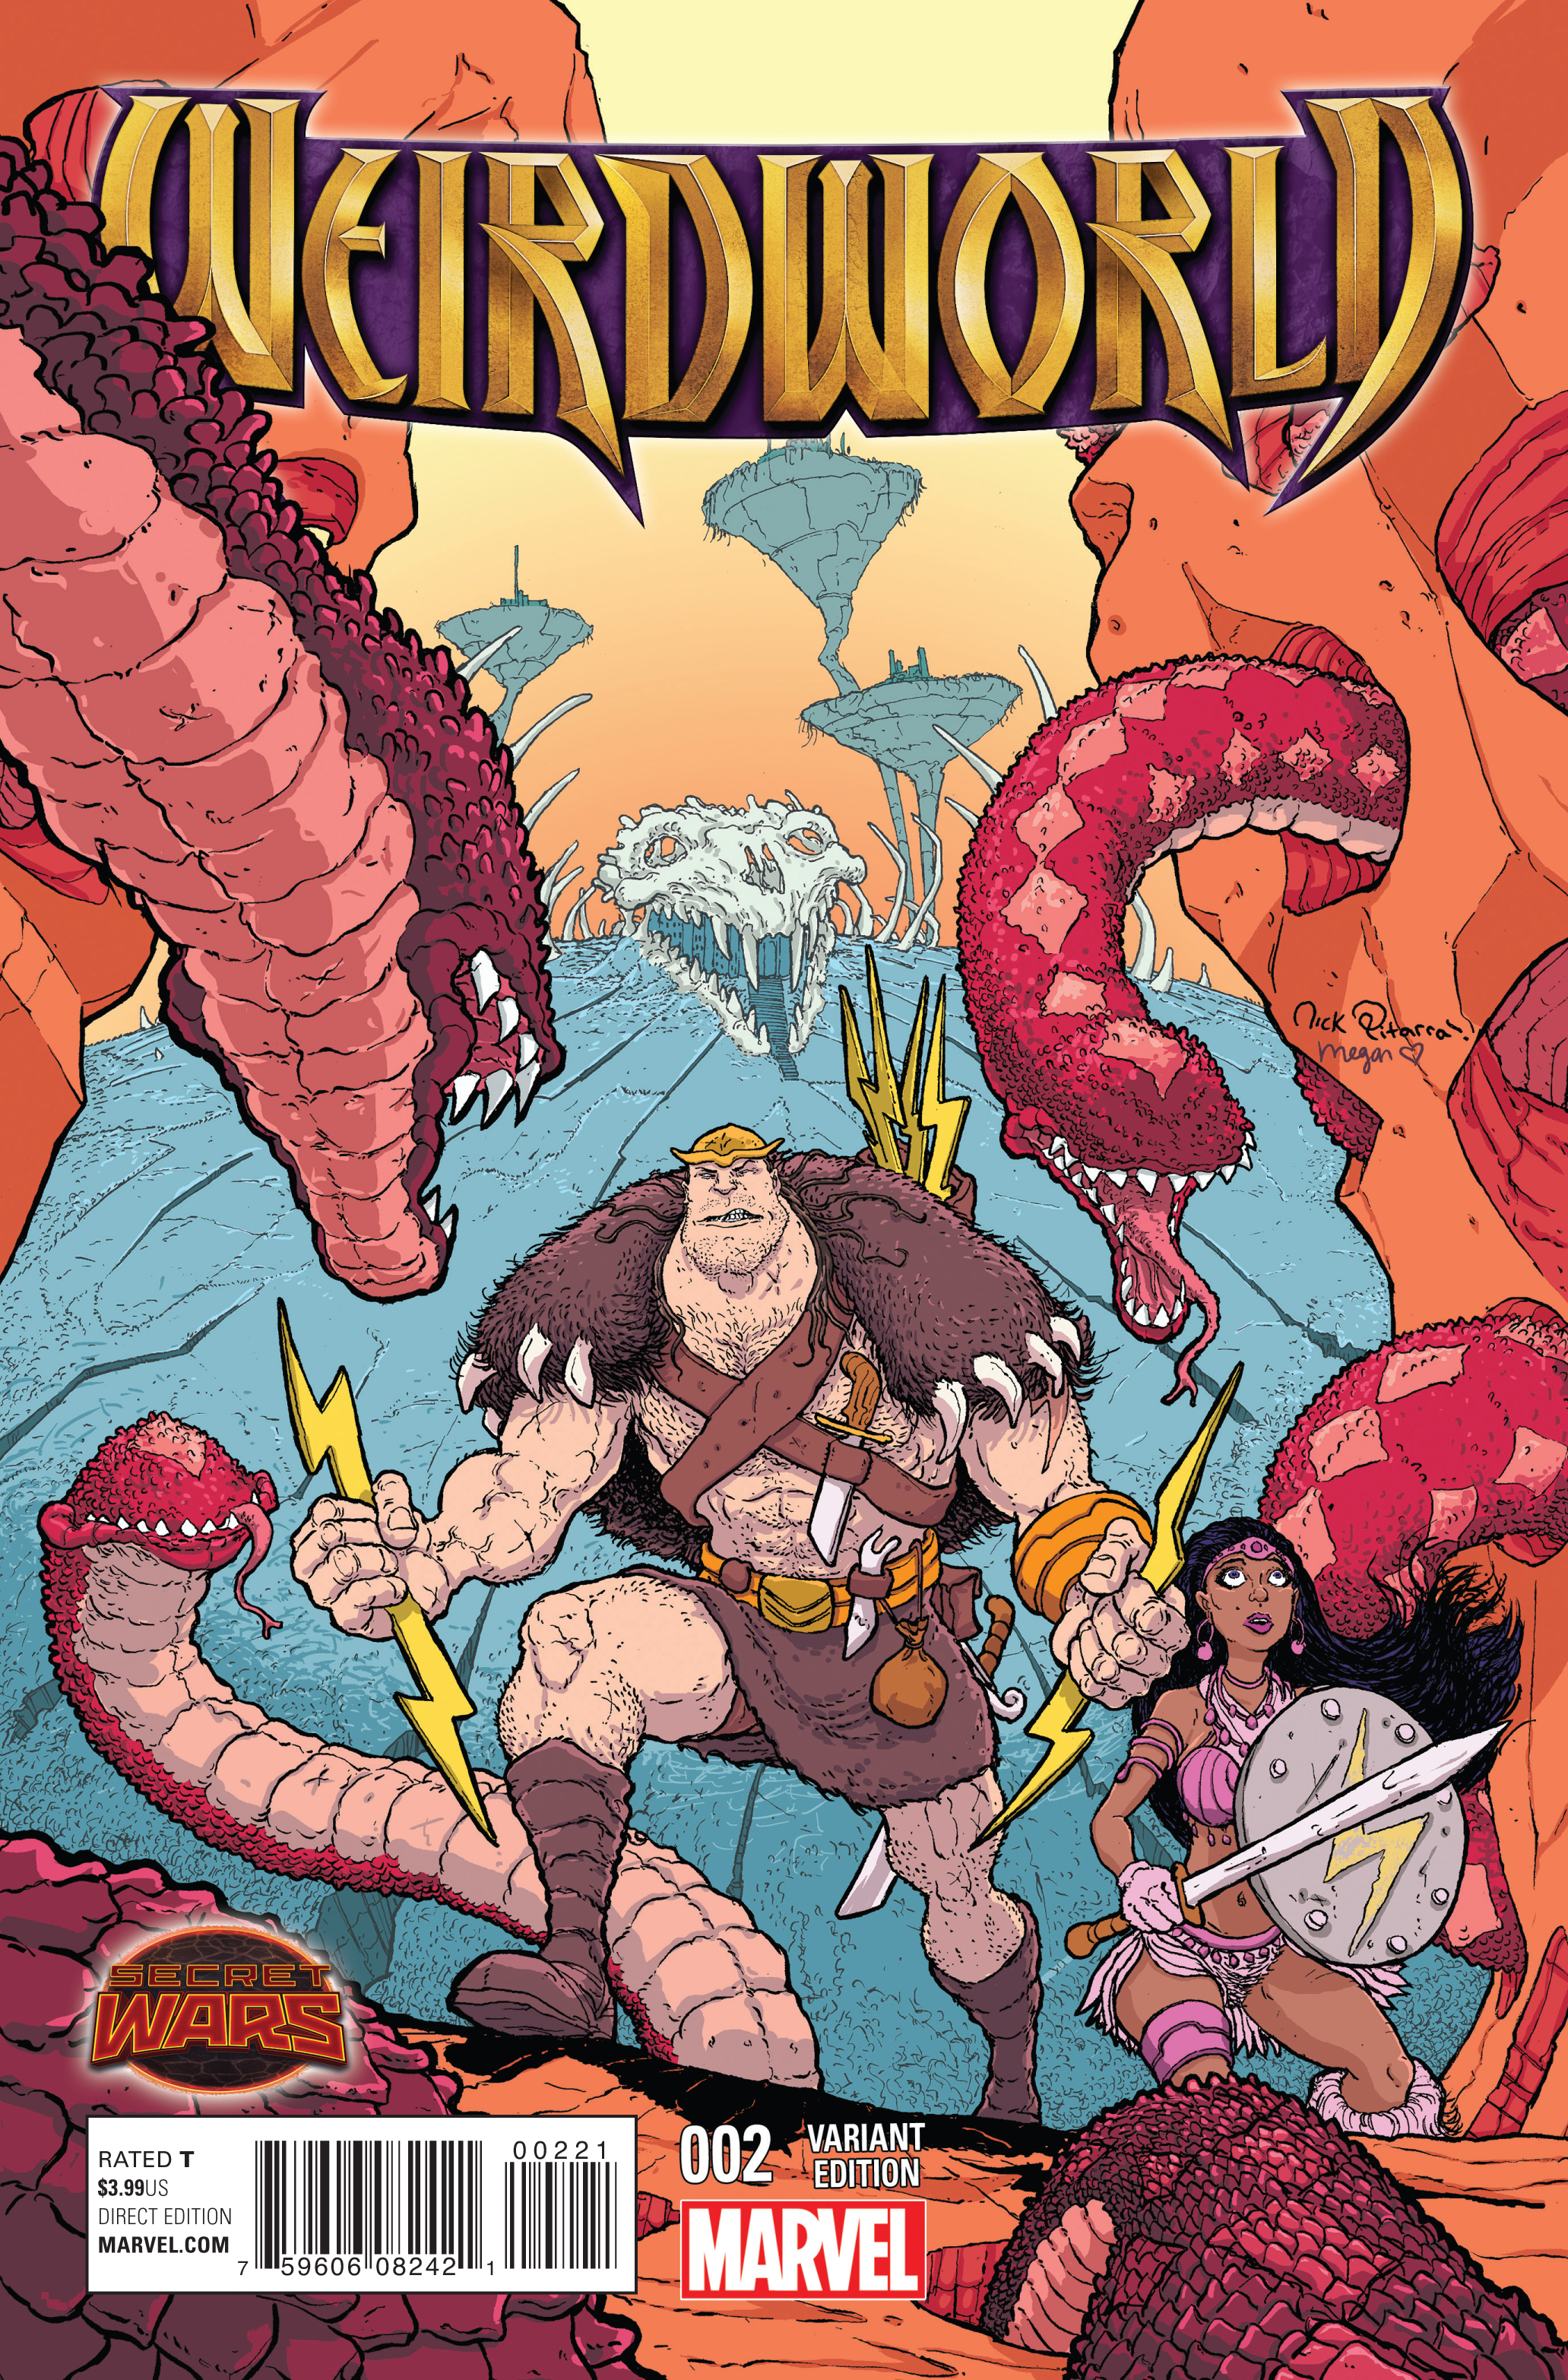 WEIRDWORLD #2 PITARRA VAR SWA